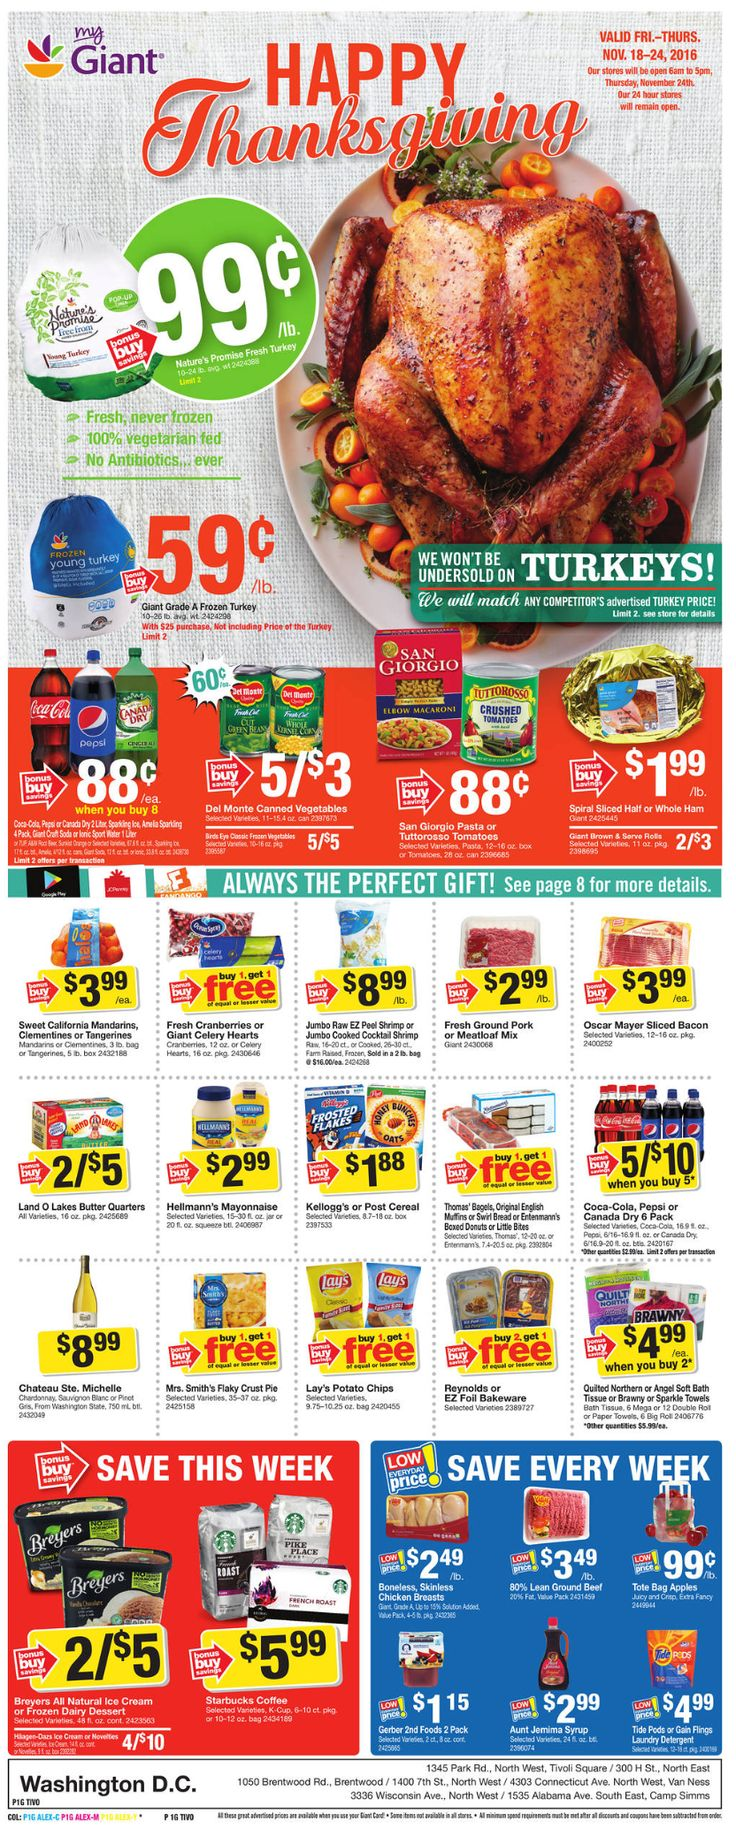 Giant Food Weekly Ad November 18 - 24, 2016 - http://www.olcatalog.com/grocery/giant-food-weekly-ad.html